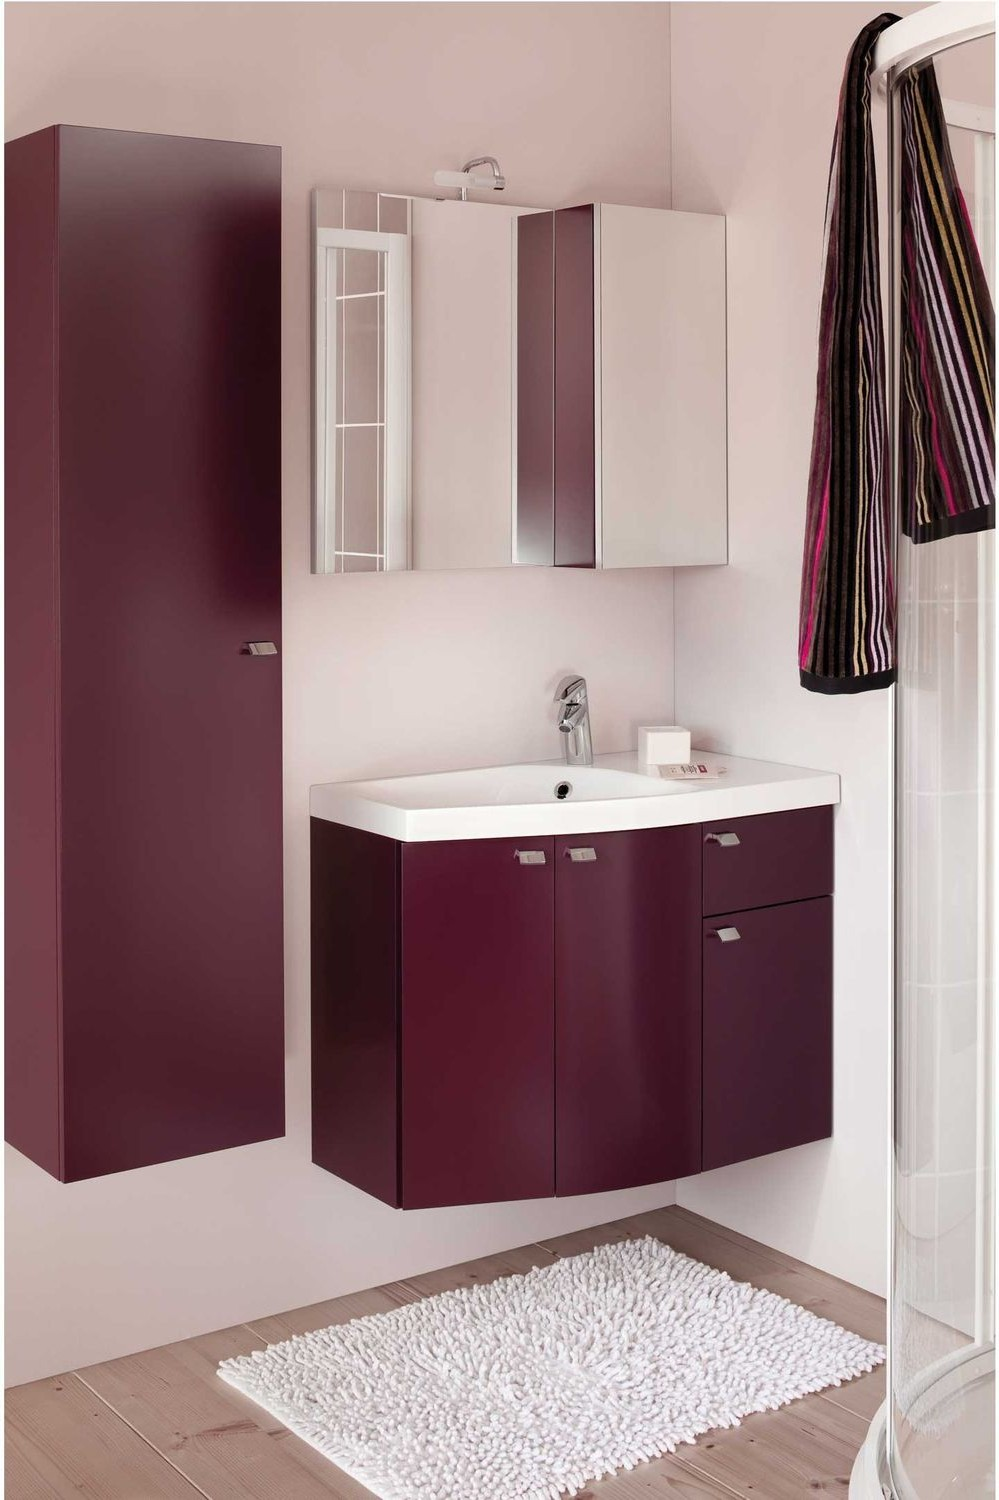 meuble vasque salle de bain aubergine salle de bain. Black Bedroom Furniture Sets. Home Design Ideas